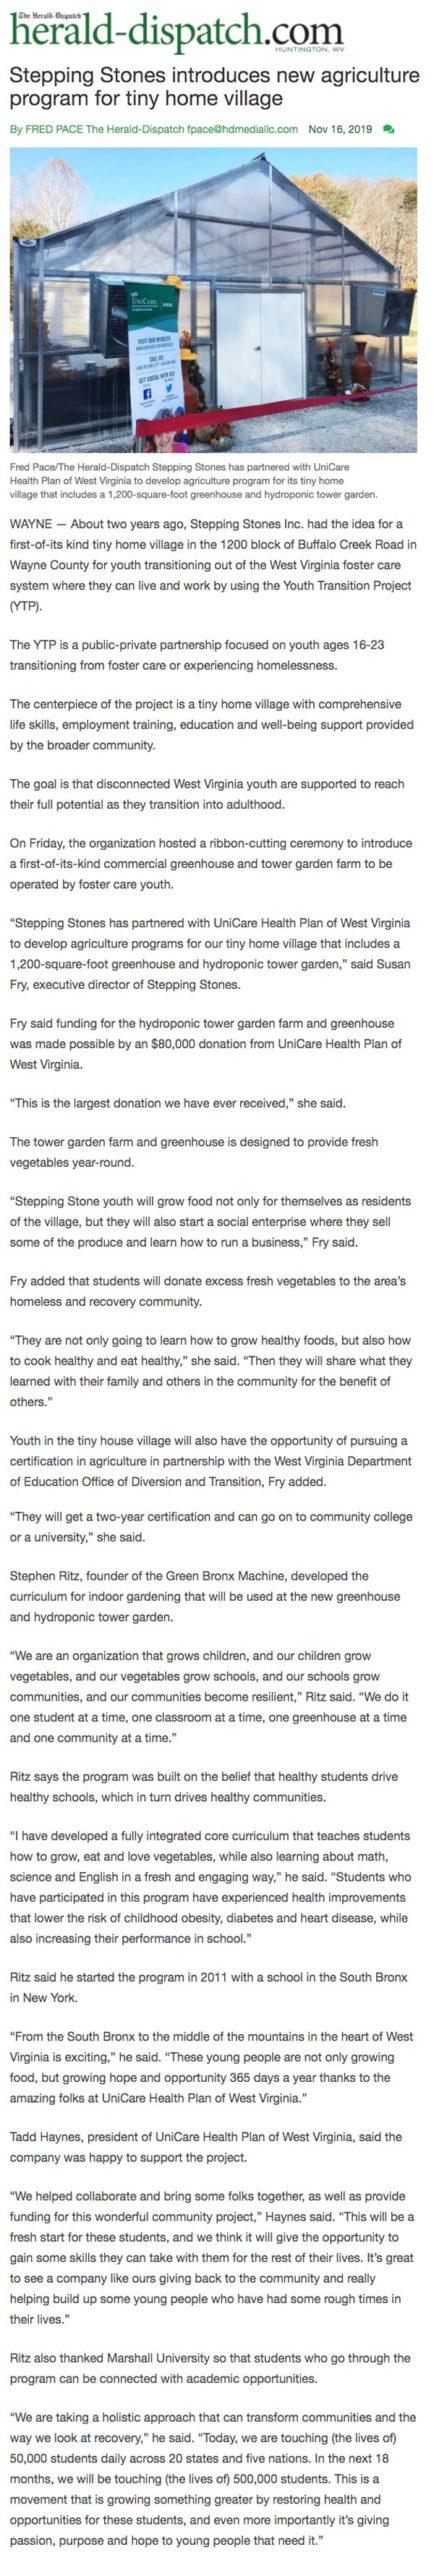 2019-11-16-stepping-stones-herald-dispatch-news-stepping-stones-introduces-new-agriculture-program-for-tiny-home-village-article-9c0933d9-6aab-508d-a29e-de2e1c7d2a4d-html